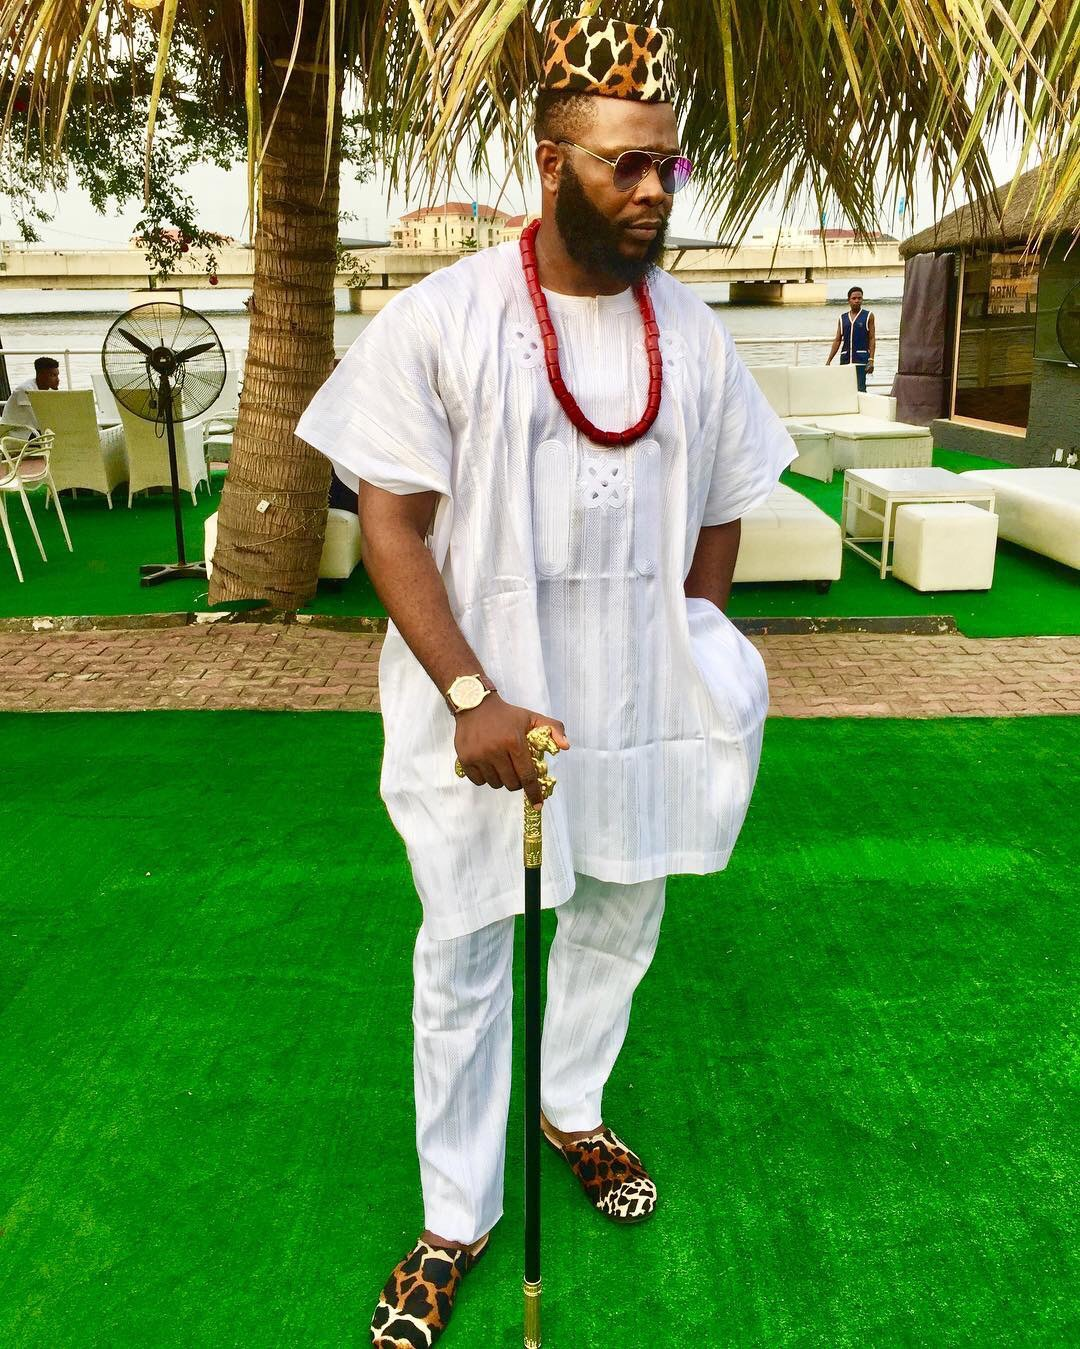 Any Lady Who Doesn't Pass At  Least 15 Out Of These Tests Not Wife Material -Joro Olumofin